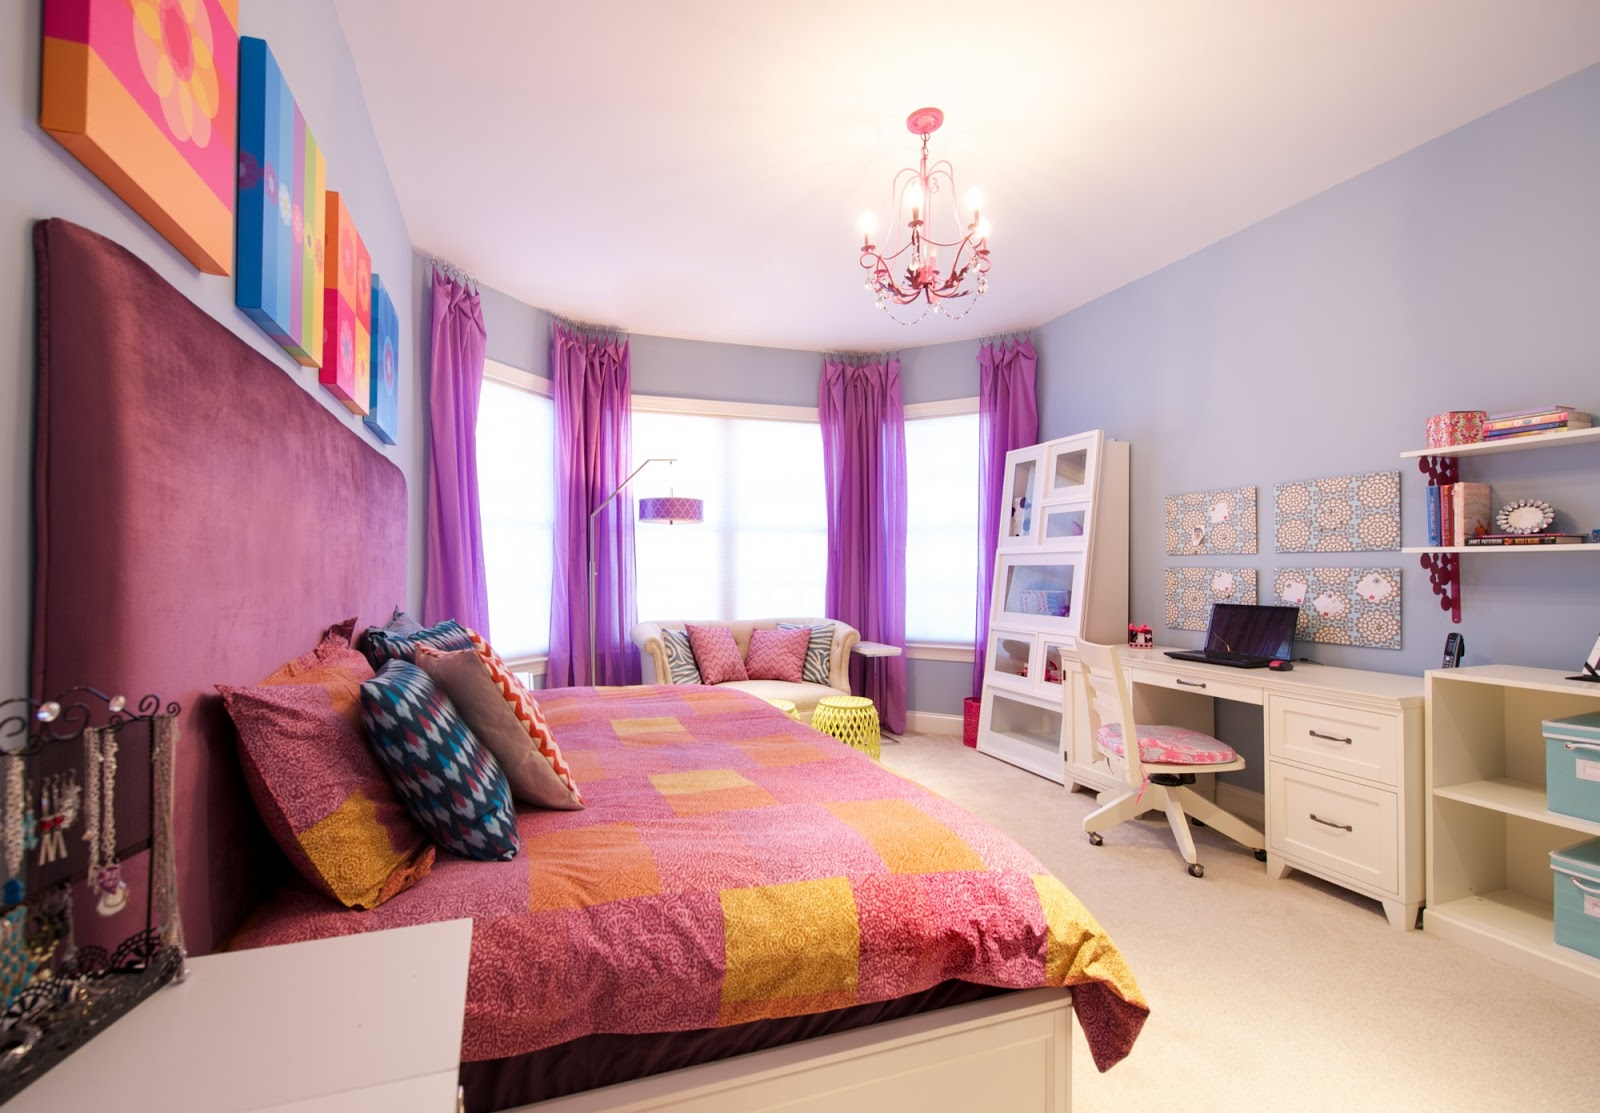 Lady Bedroom Funky Colorful Haven For A Tween Girl From Olamar Interiors